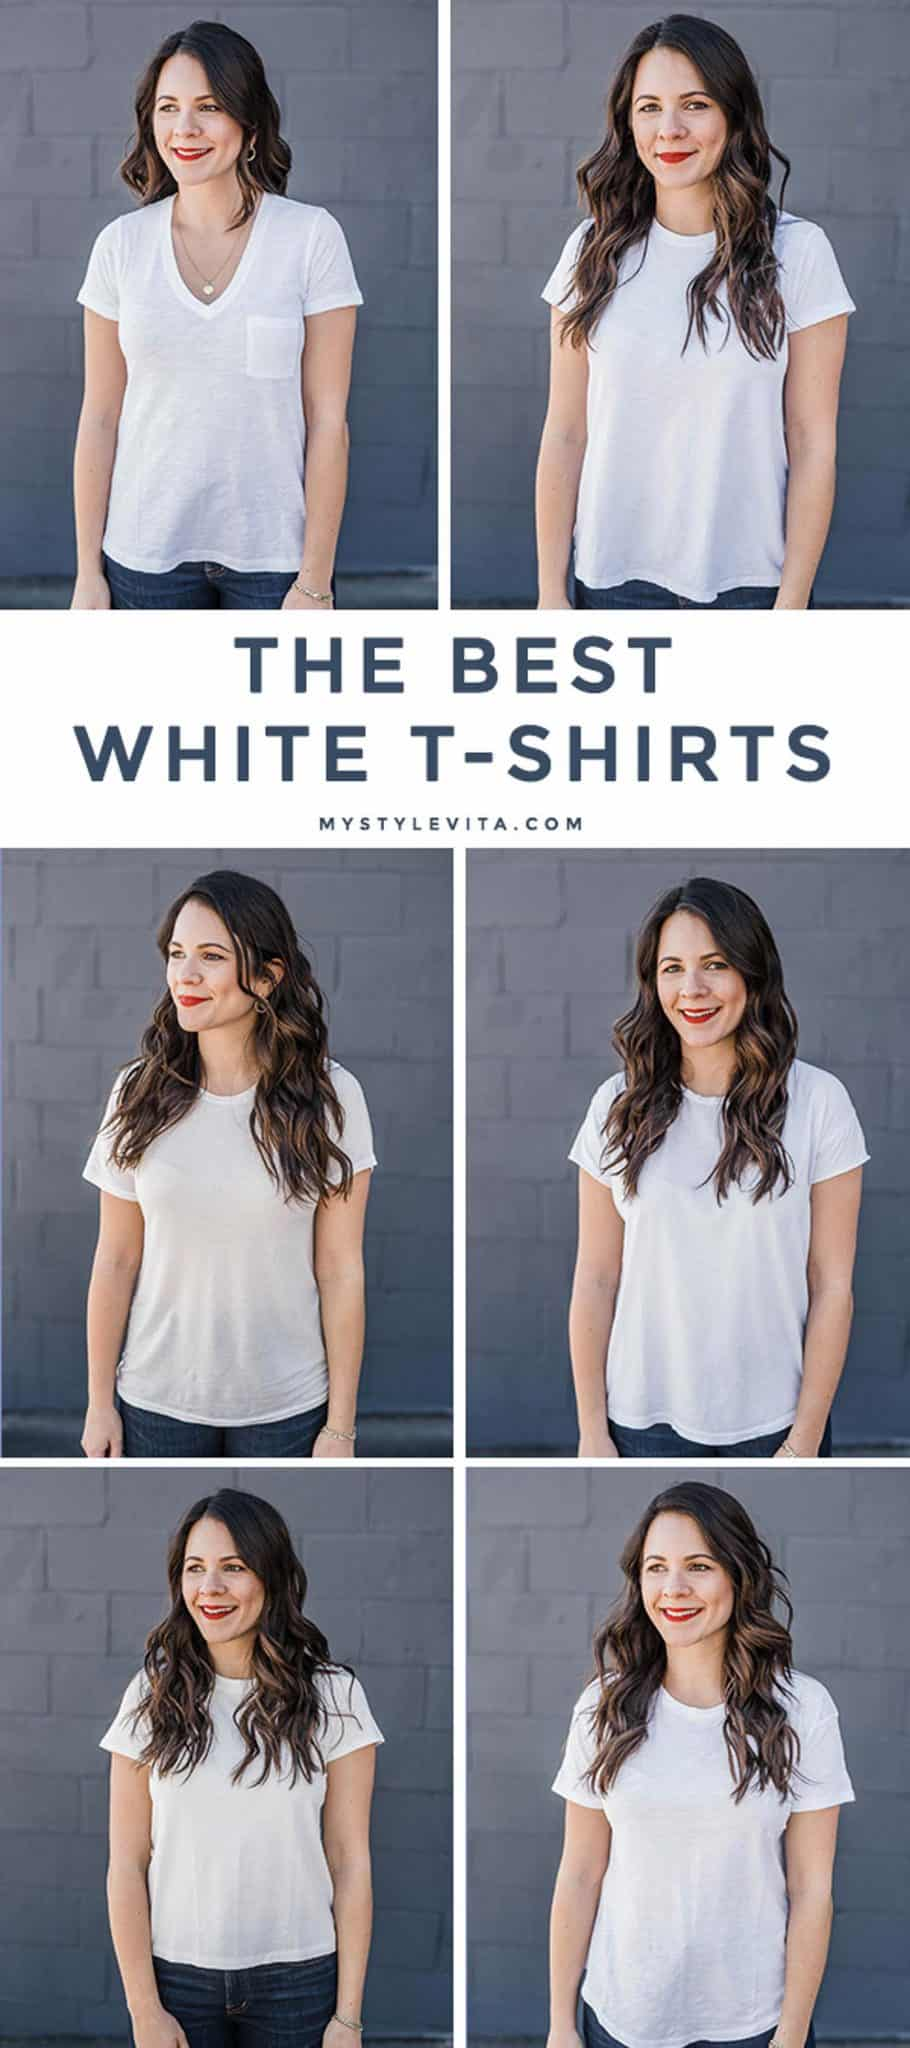 The Best White T-Shirts Review by My Style Vita